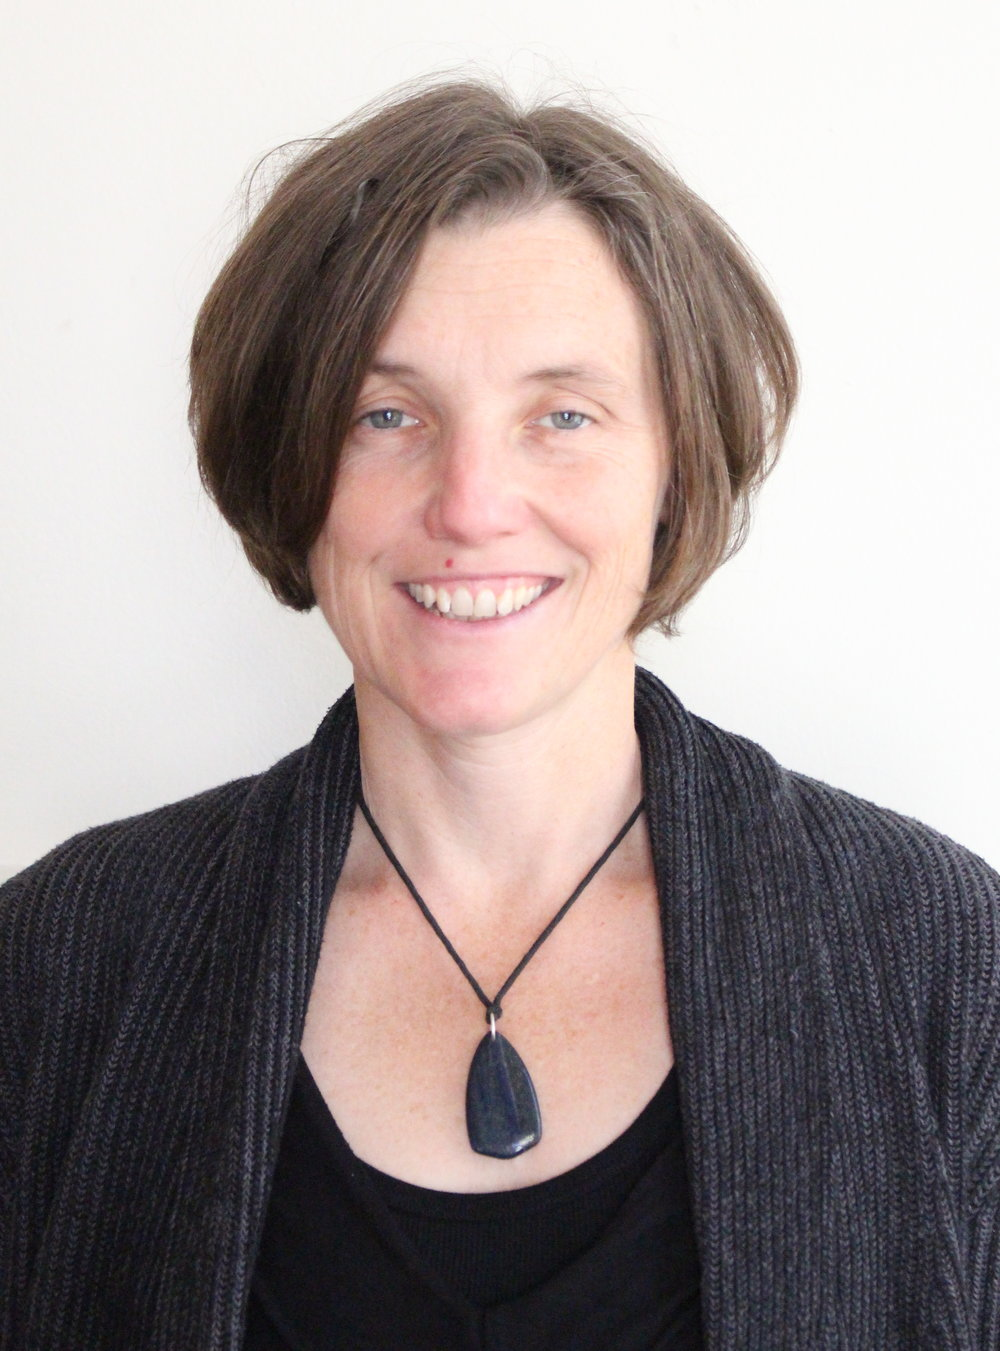 Professor Kathryn V. Johnston